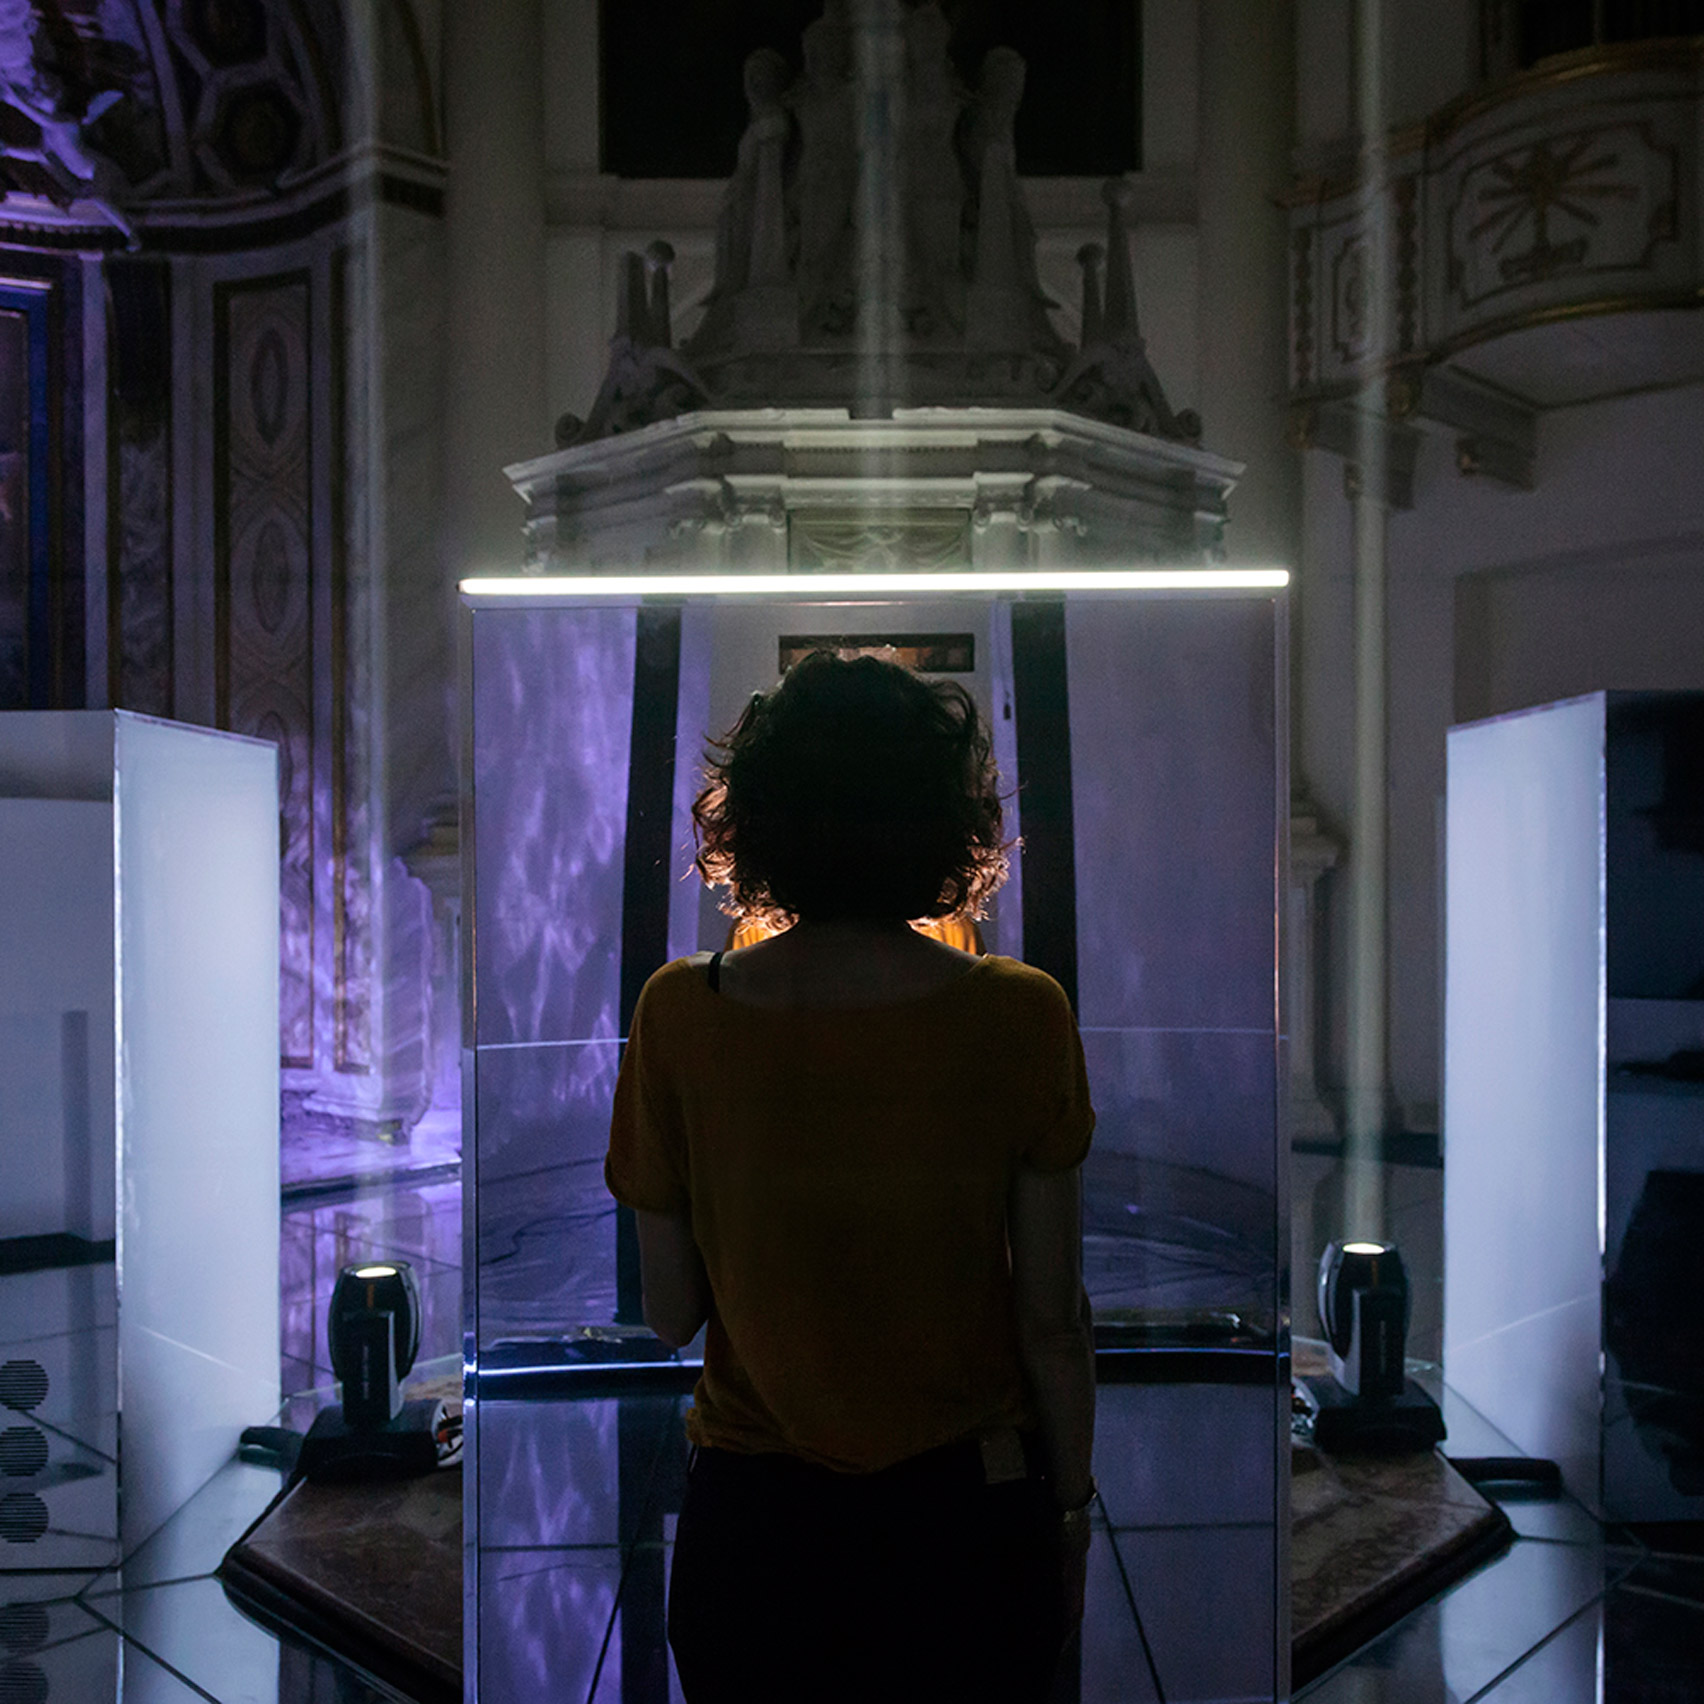 Ultravioletto's Neural Mirror shows audiences an AI reflection of themselves